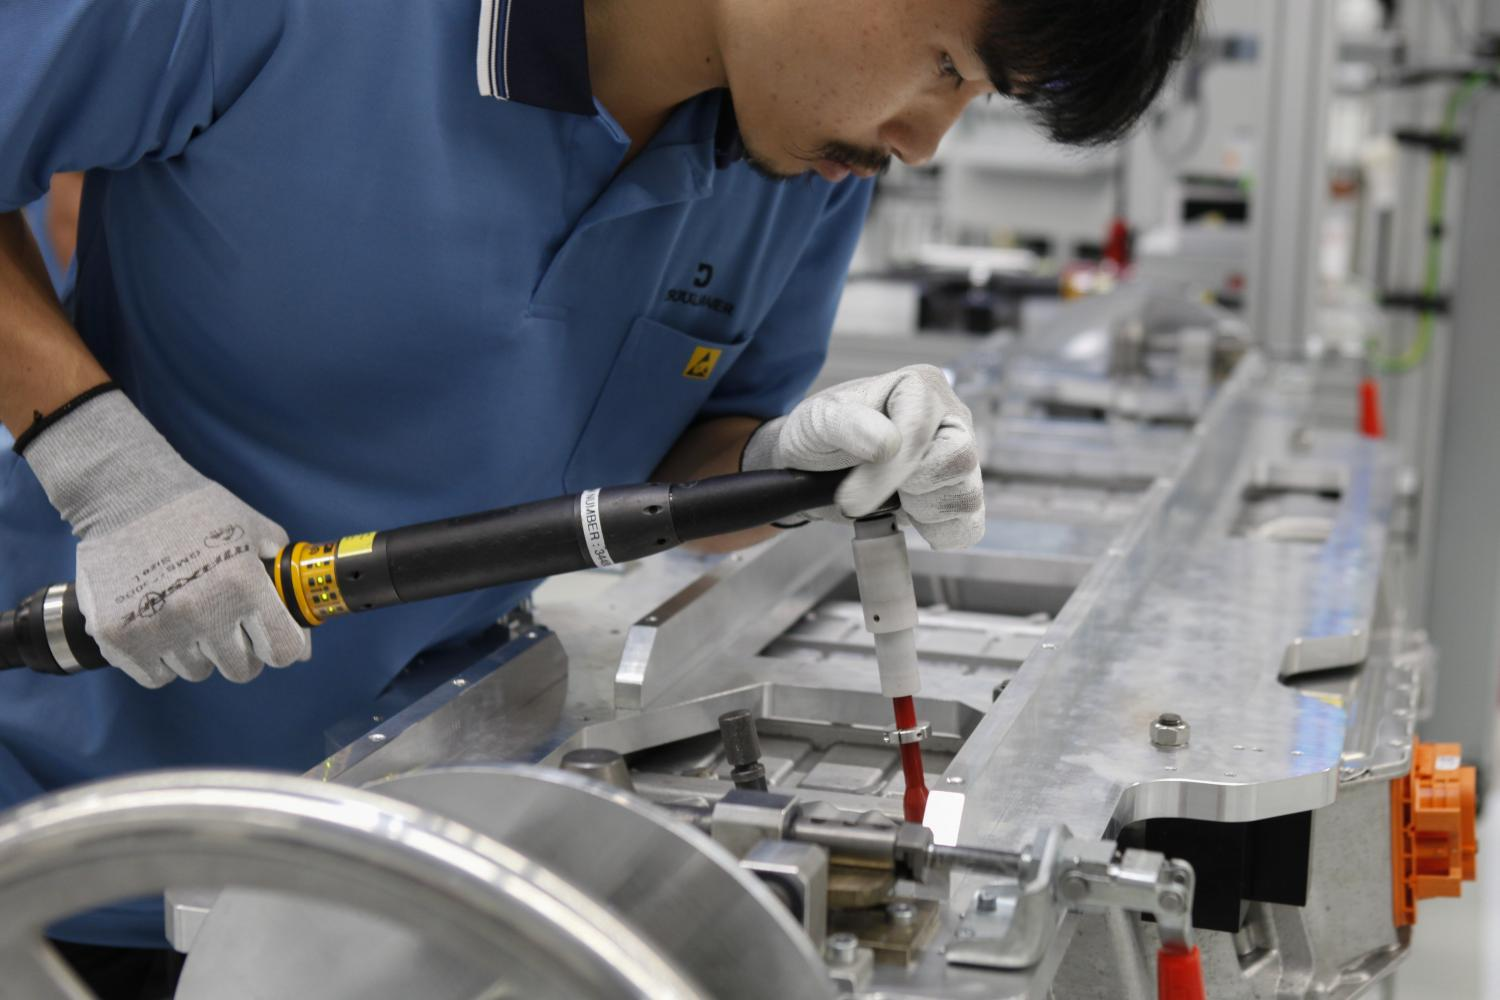 A Draexlmaier worker packs modules for high-voltage batteries at the plant in Chon Buri. BMW plans to use this output to lower the cost of locally assembled plug-in hybrid EVs.